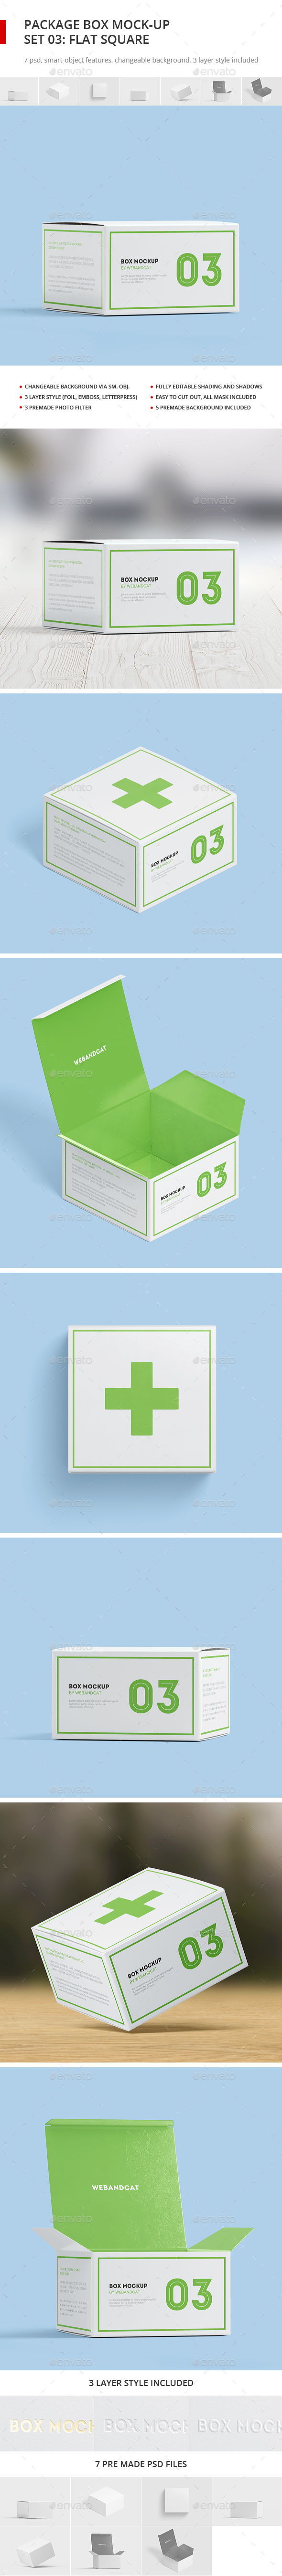 Package Box Mock-up, Set 3: Flat Square Box